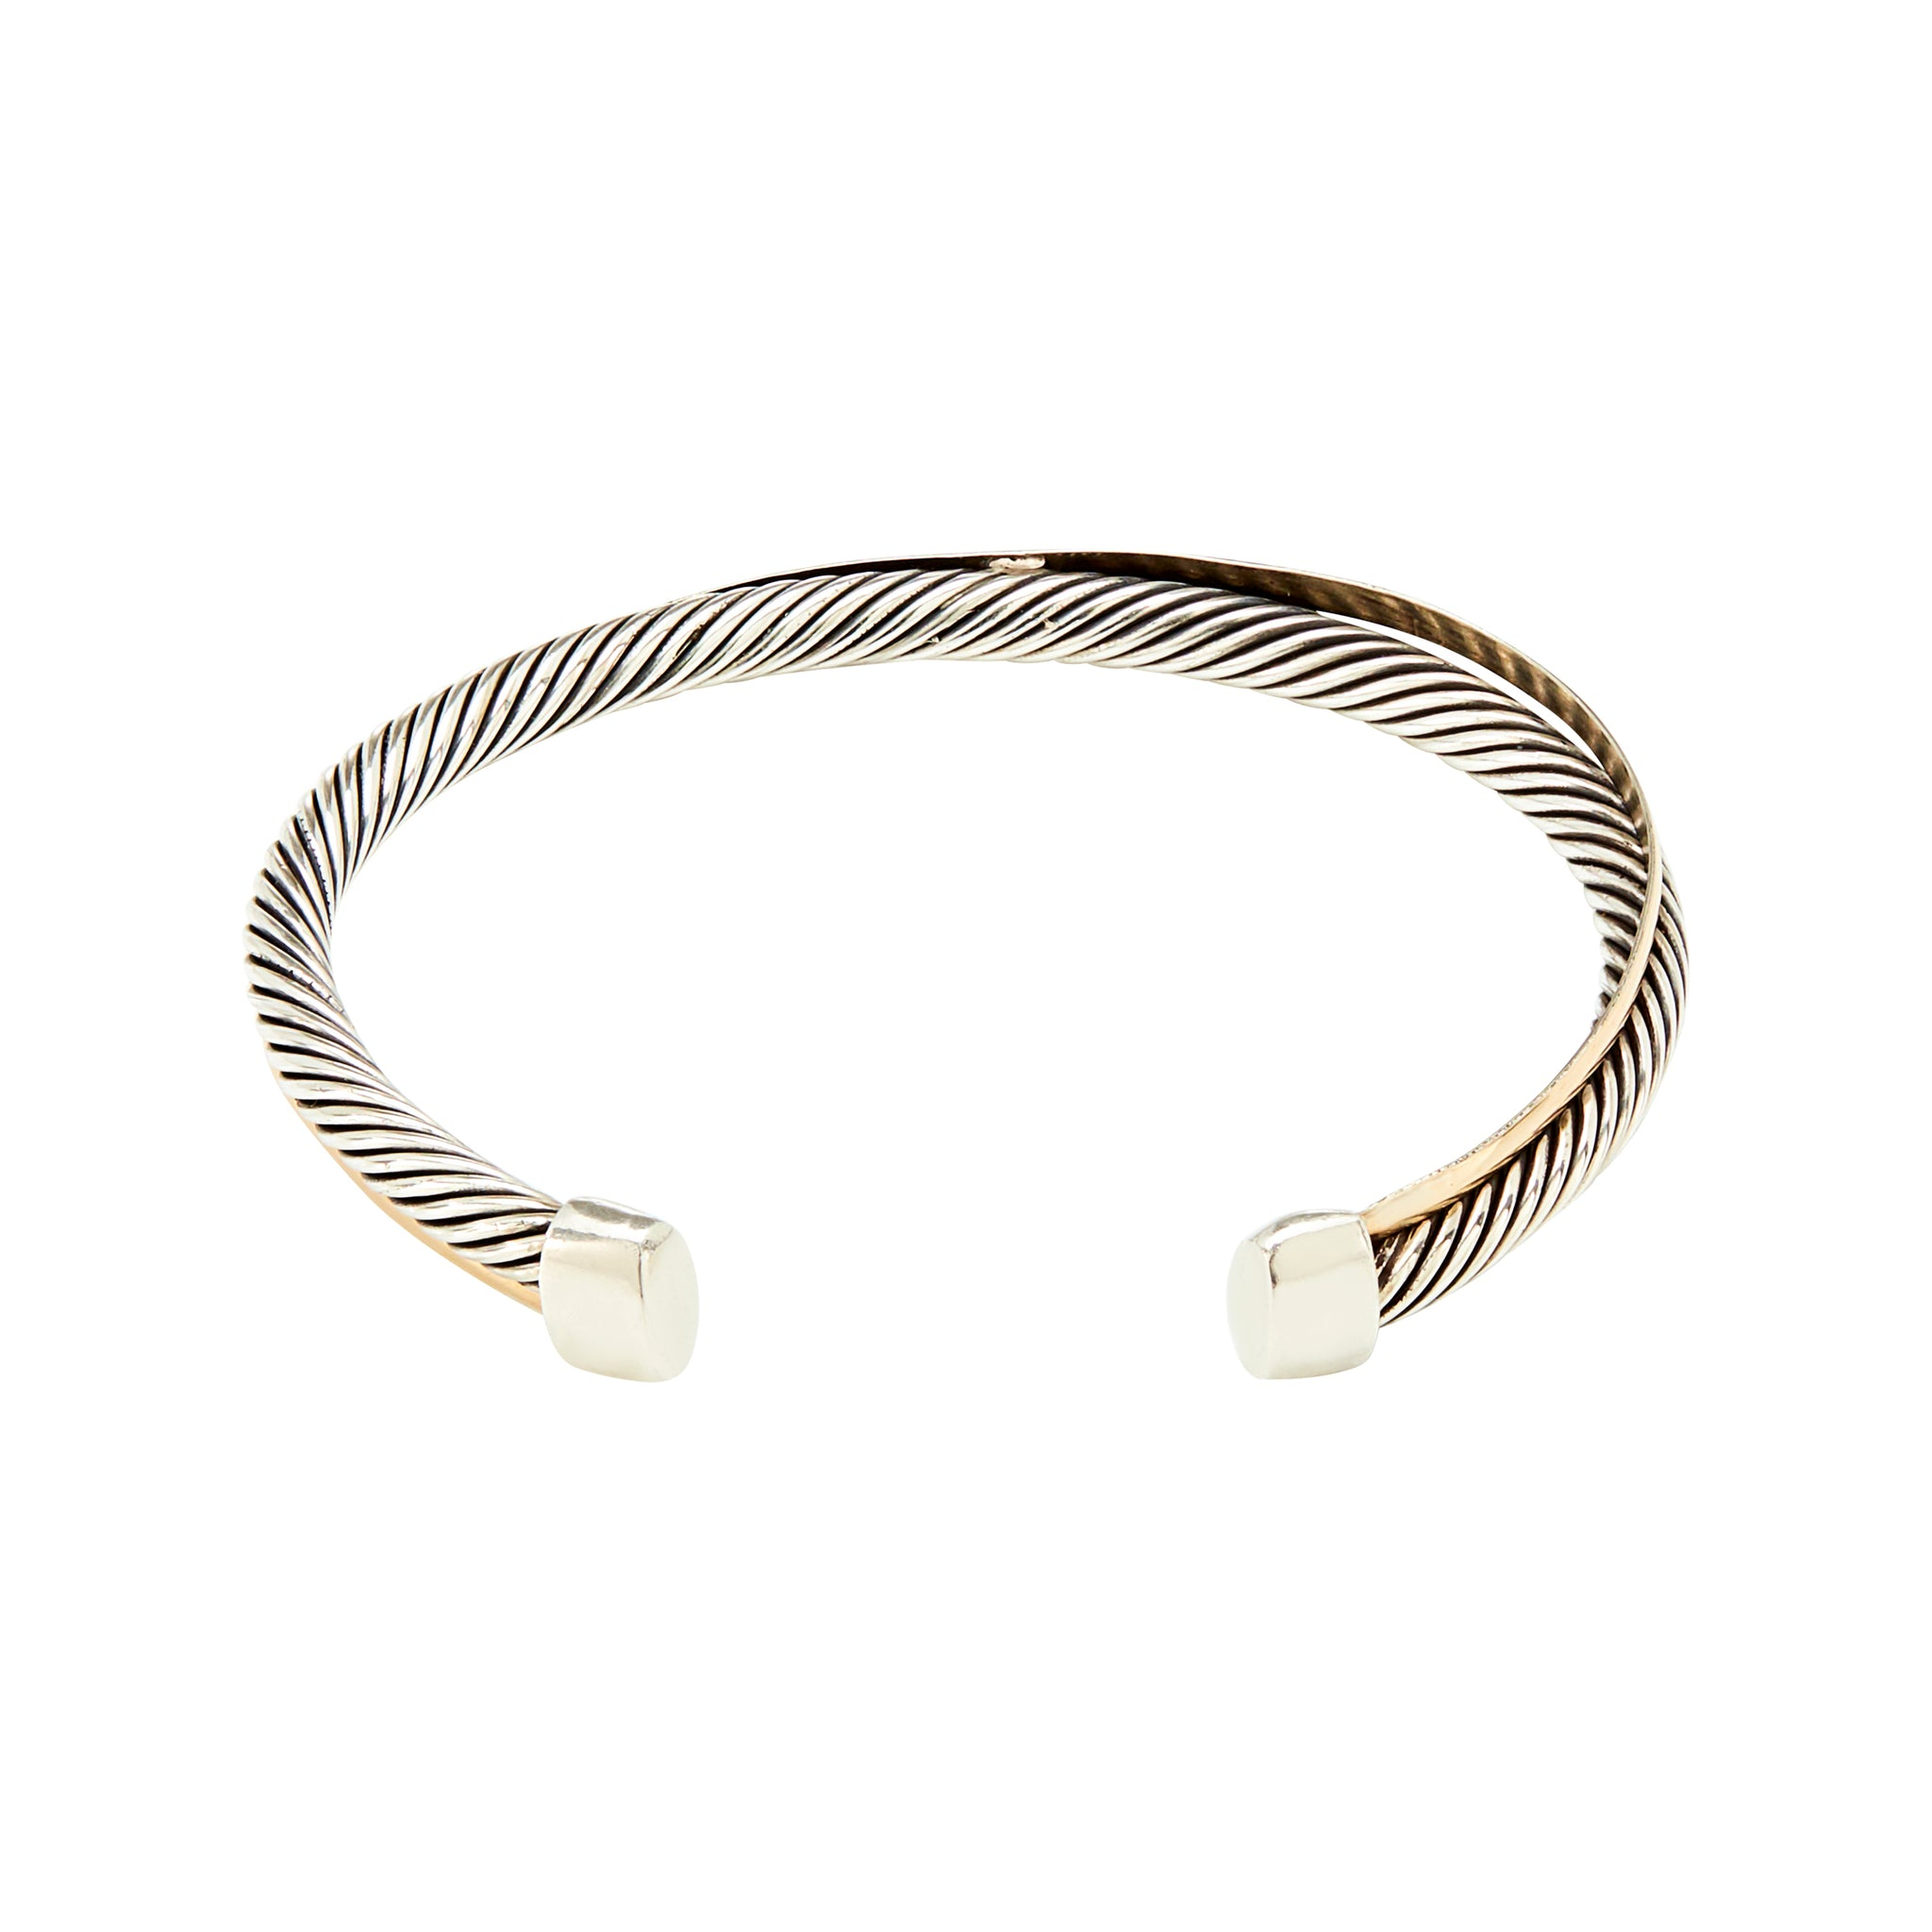 c2388bfb755 Bicolour Slim Gold Twisted Cuff Bracelet - Sterling Silver and 14k Solid  Gold